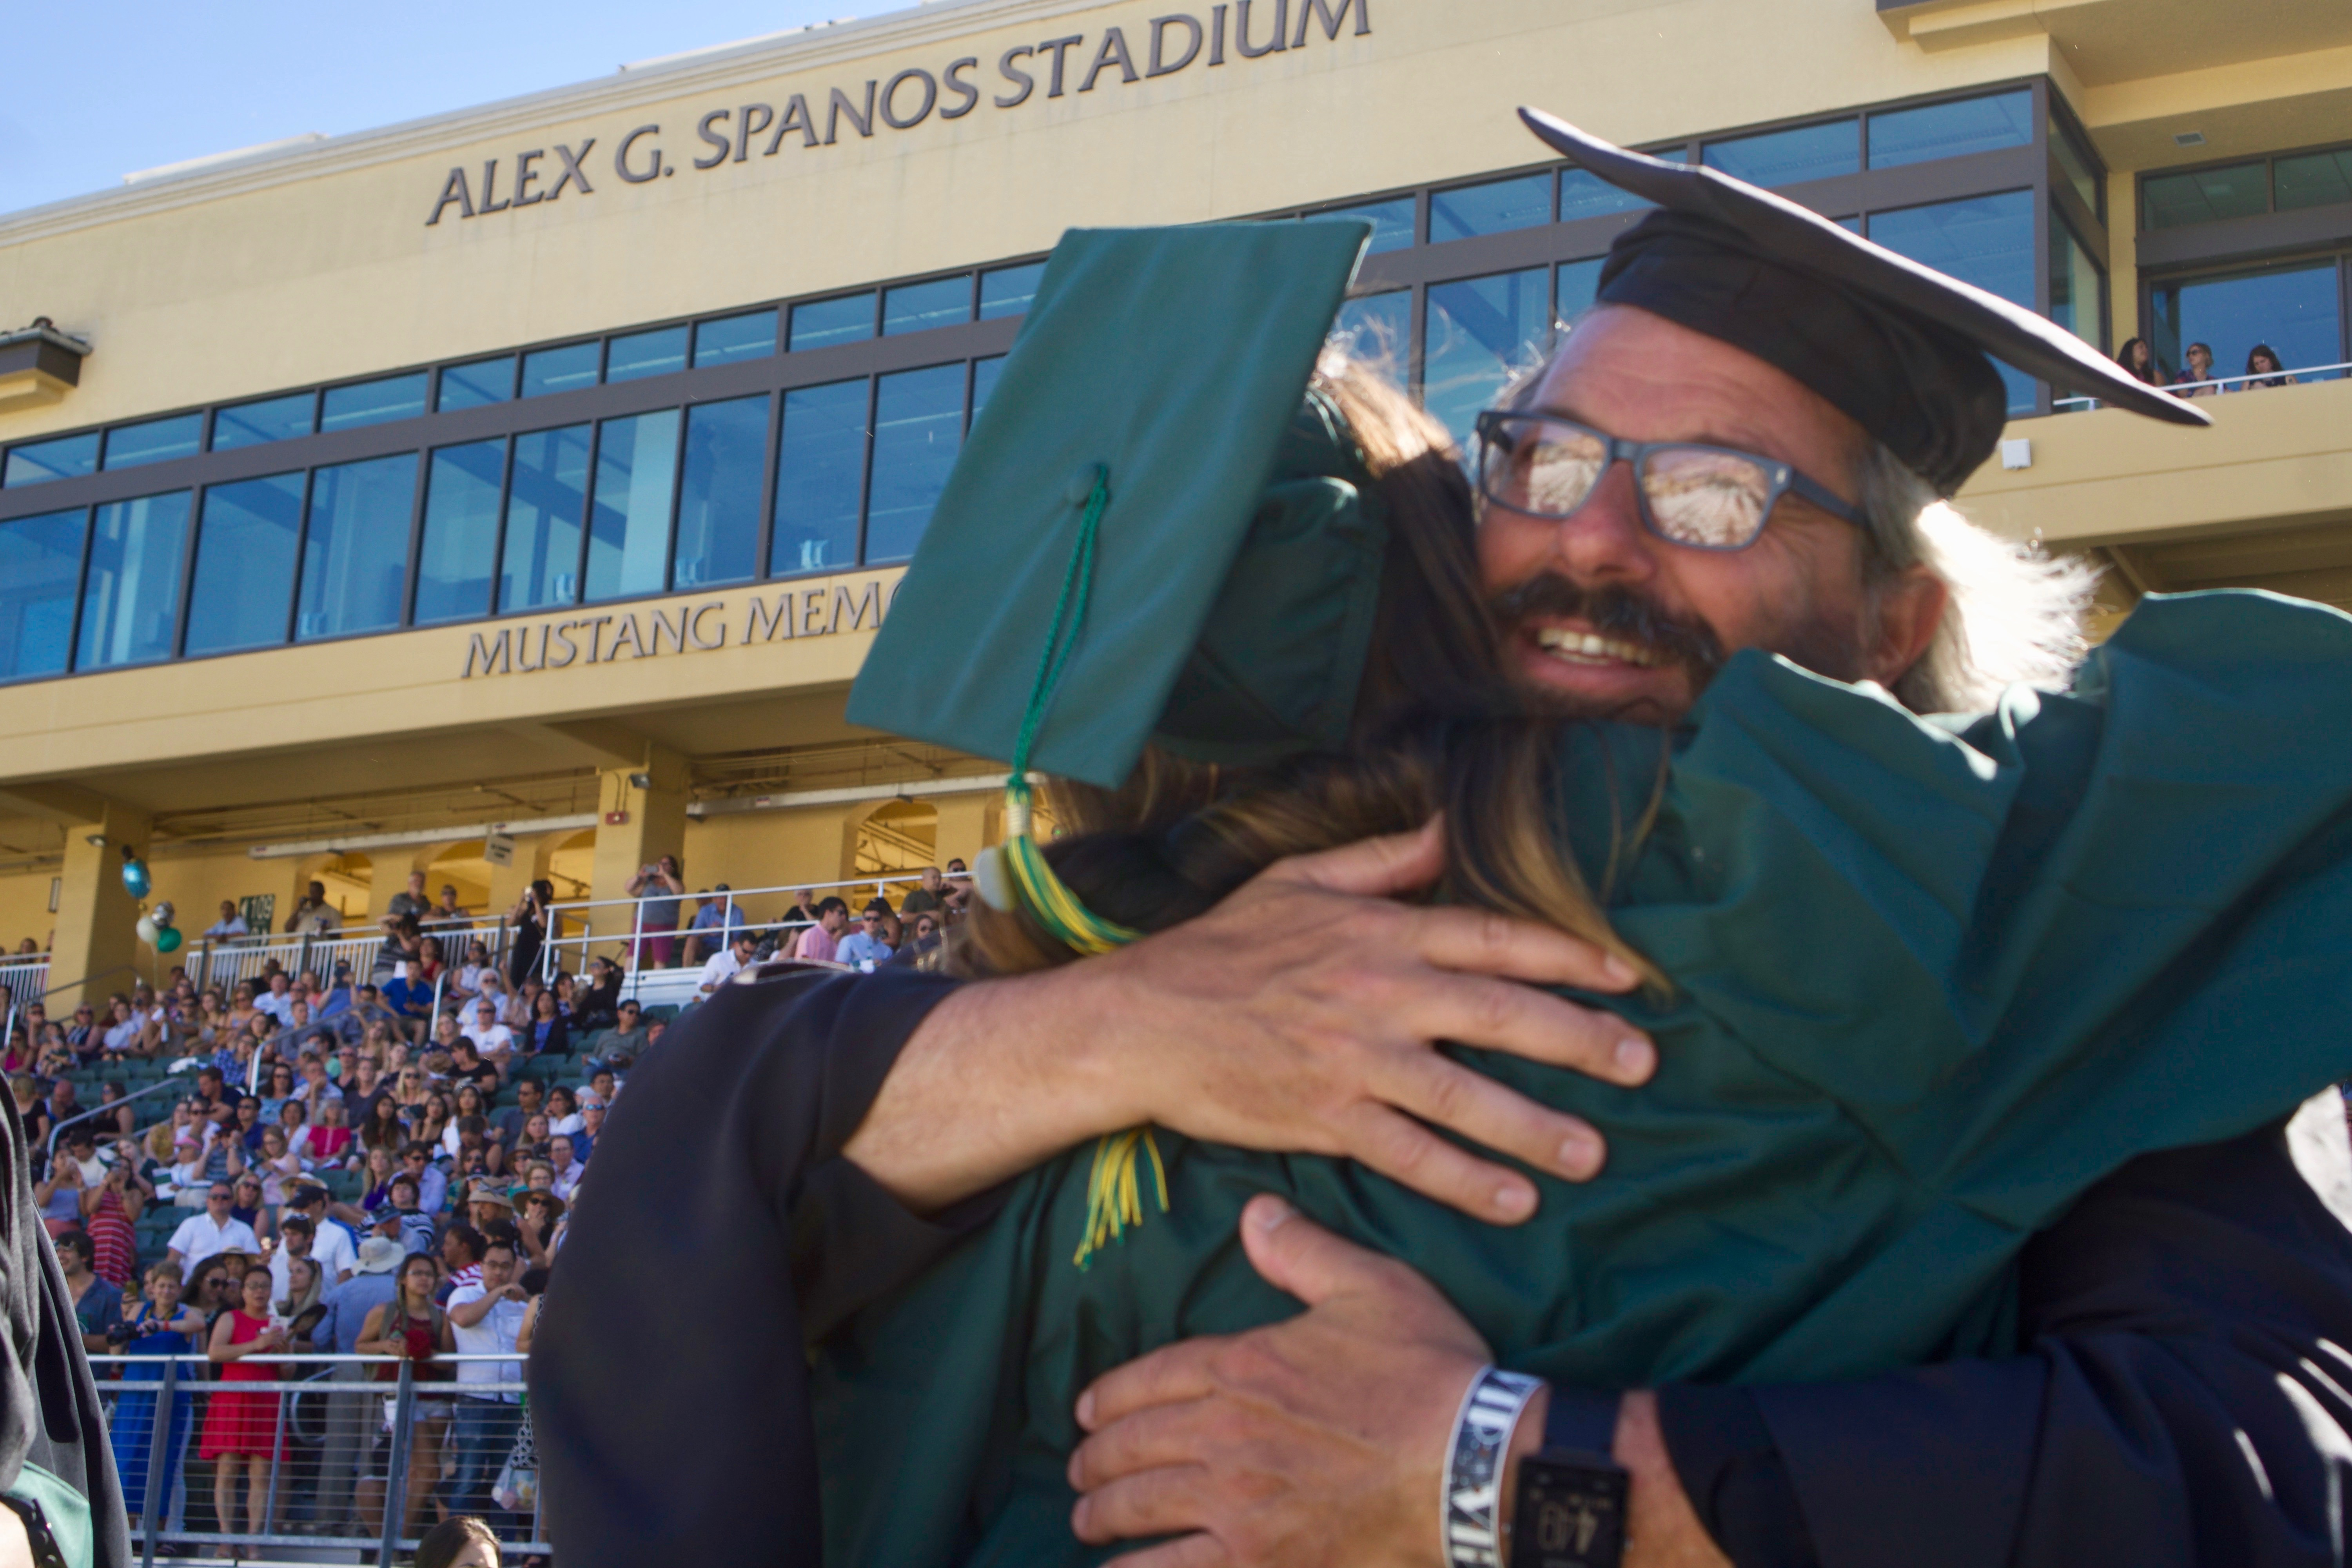 Photo of two people wearing green caps and gowns and hugging in Alex G. Spanos Stadium during a commencement.